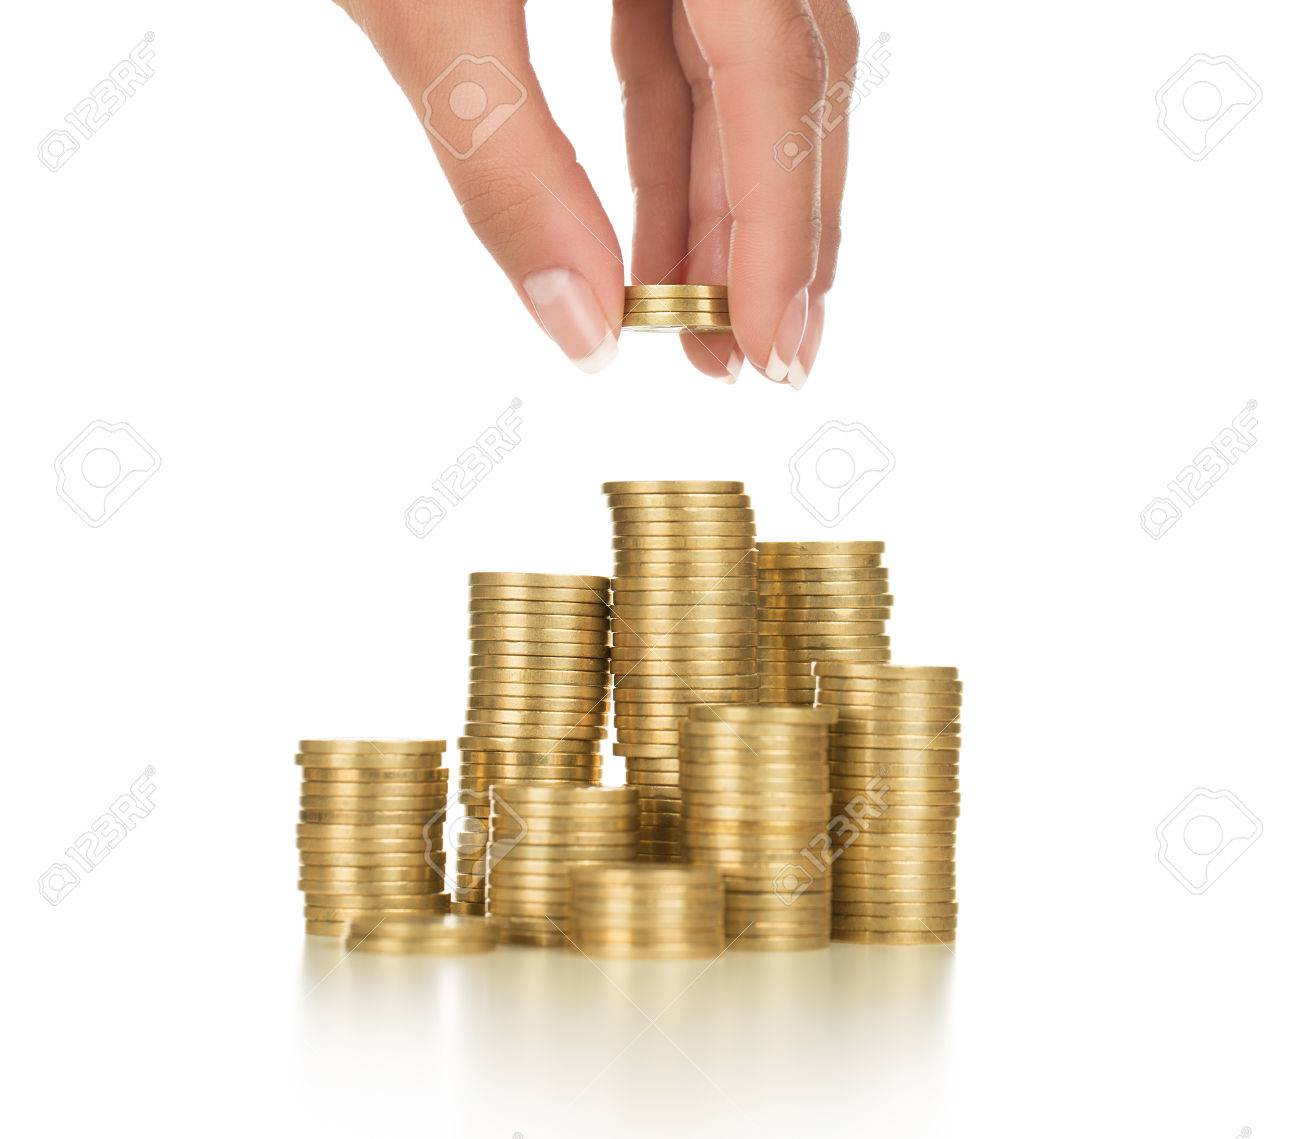 Close up of female hand stacking gold coins isolated on white background - 35119651